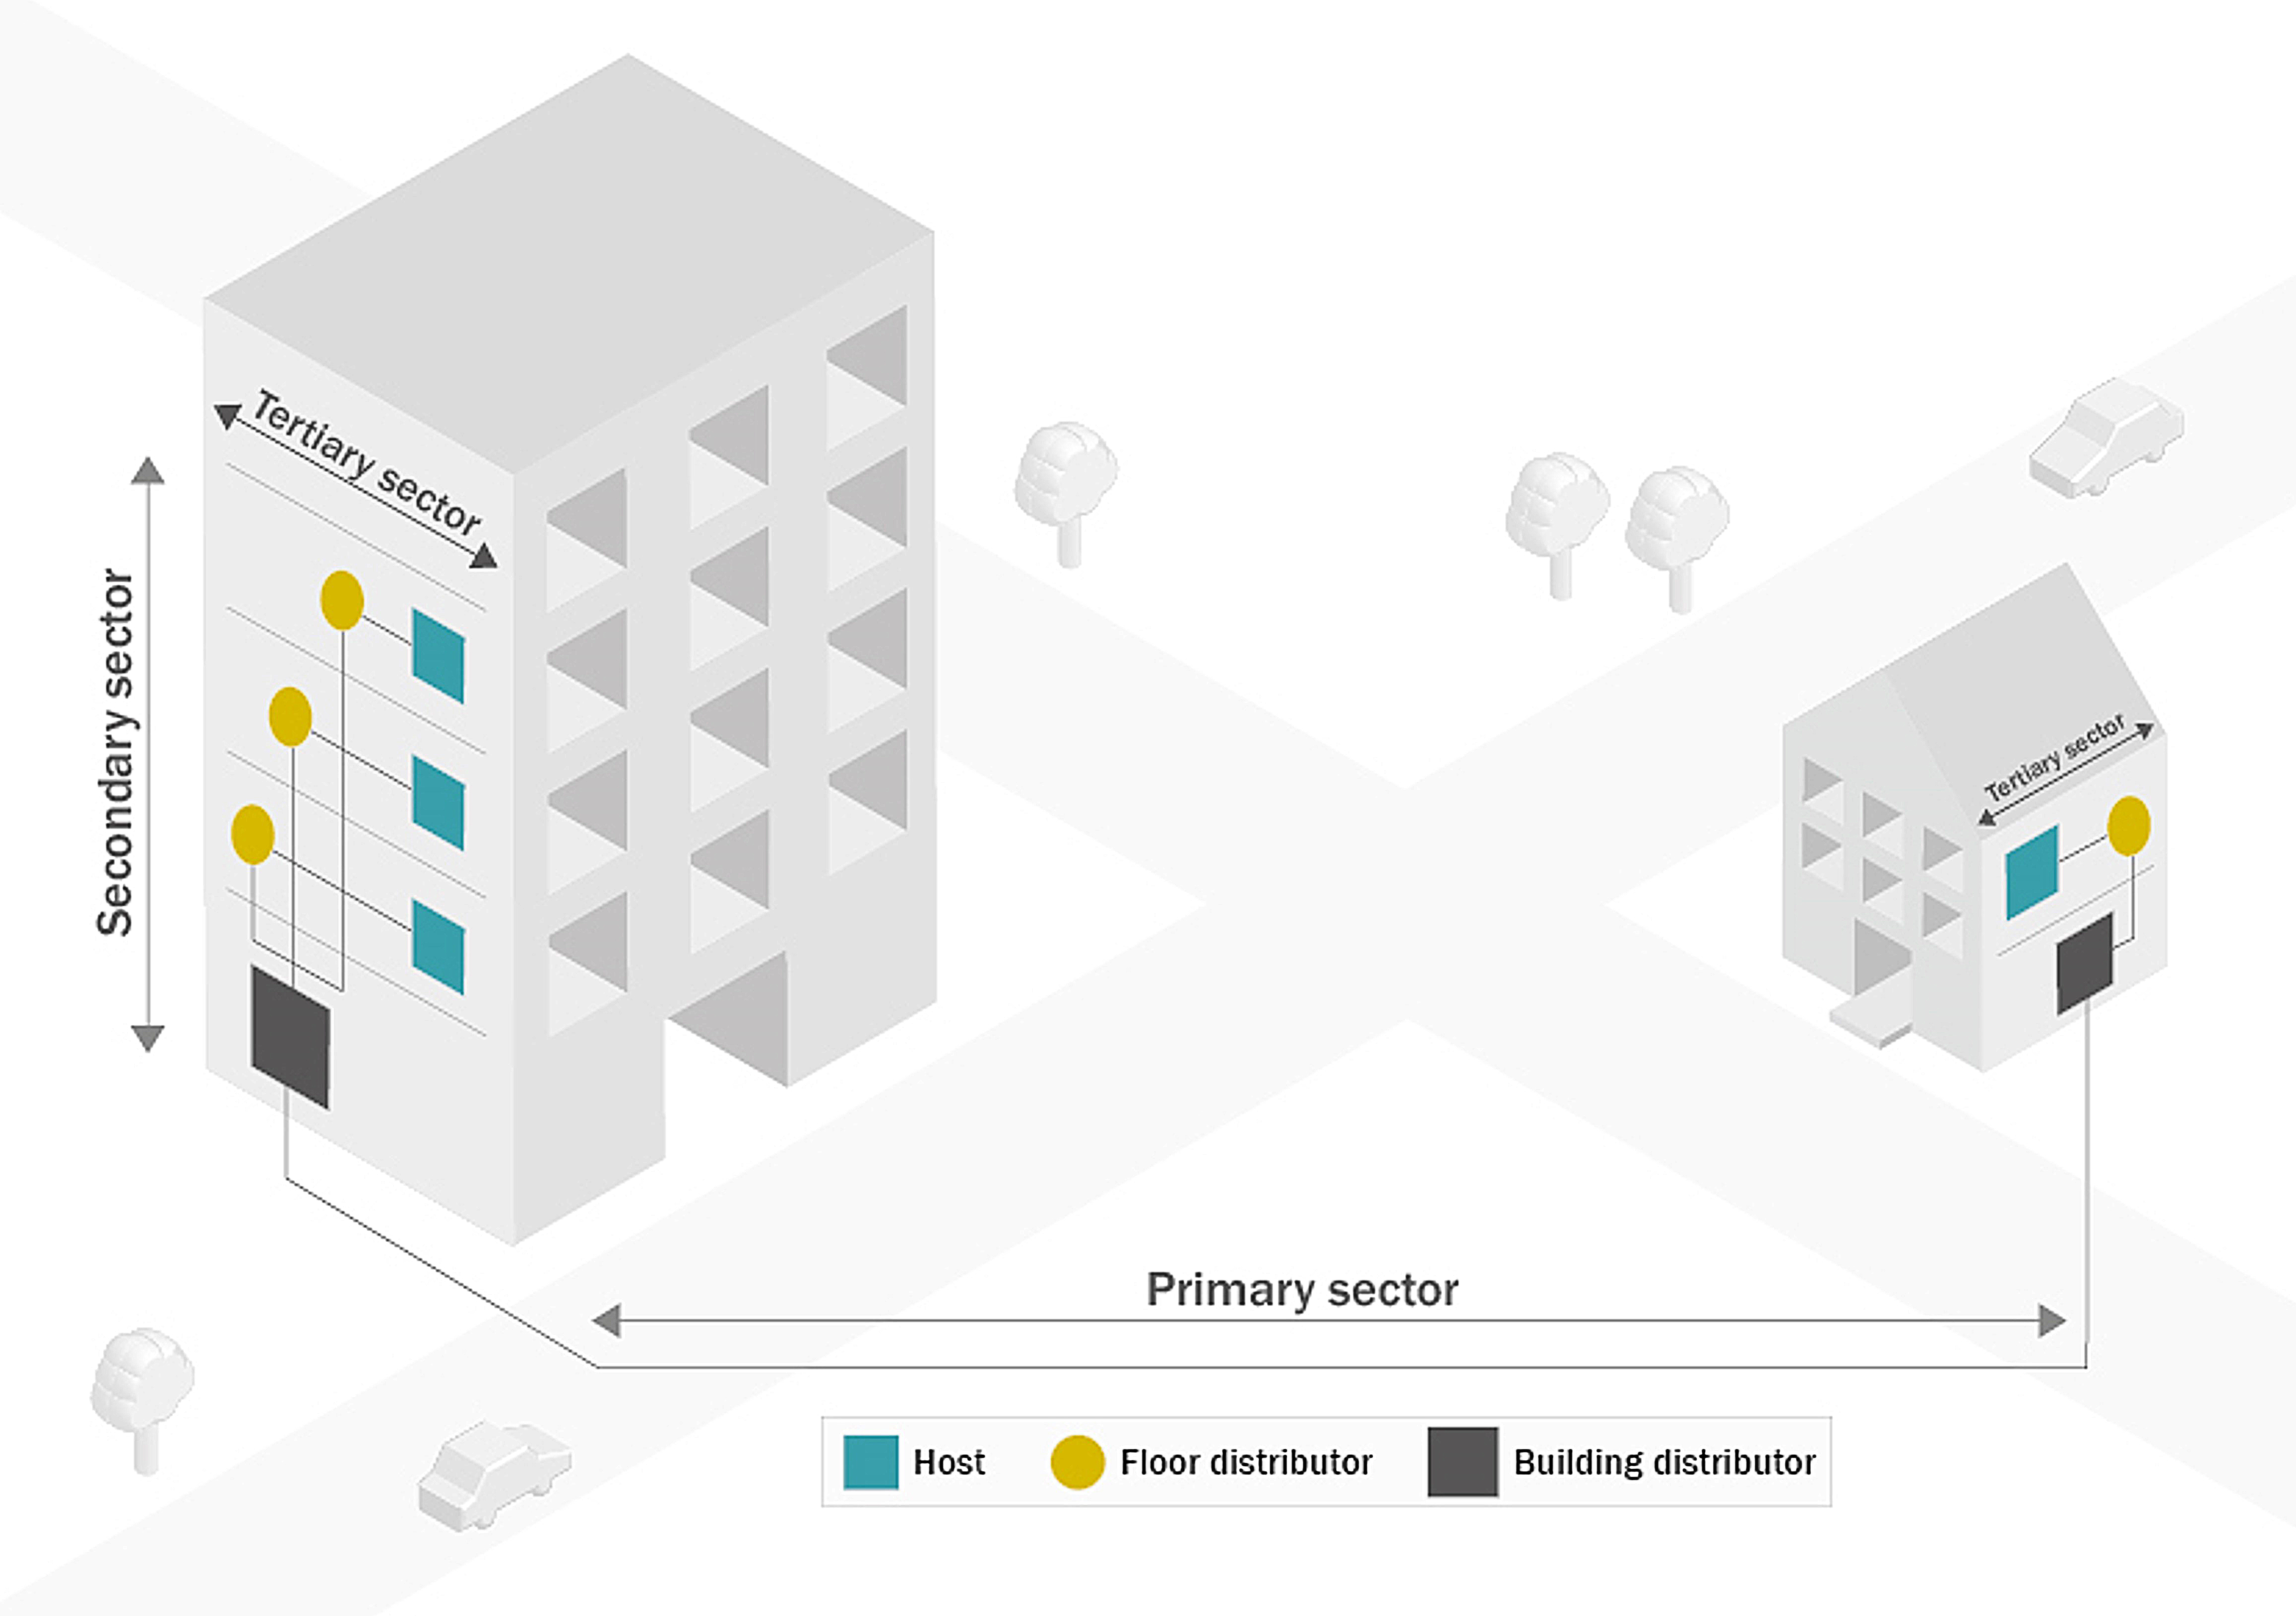 Sketch of the primary, secondary and tertiary sectors